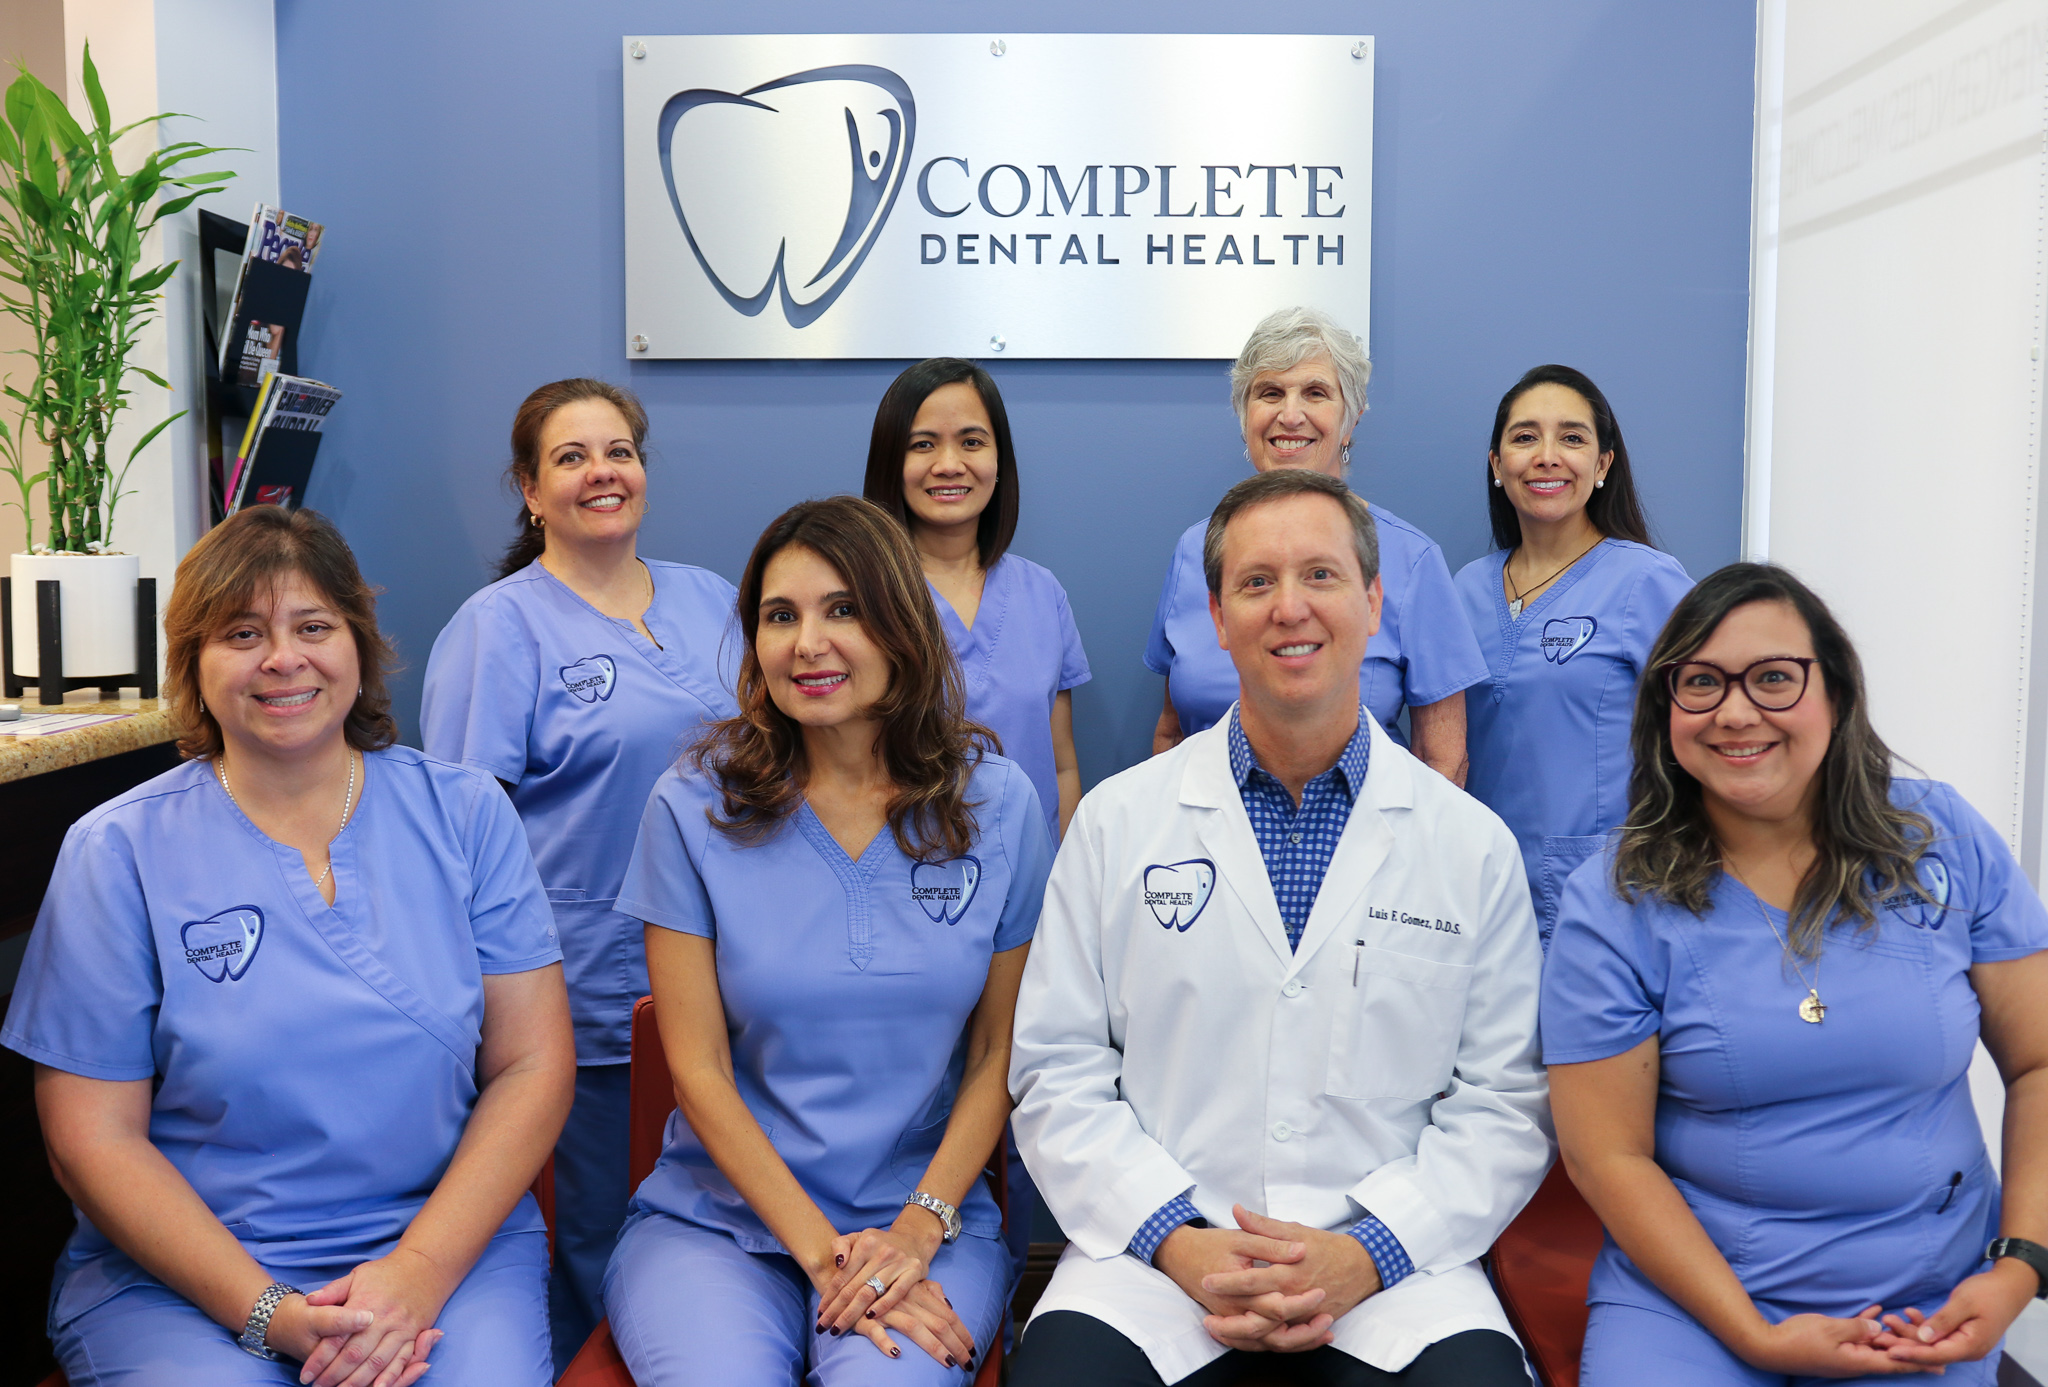 Dental Office Staff in Coral Springs